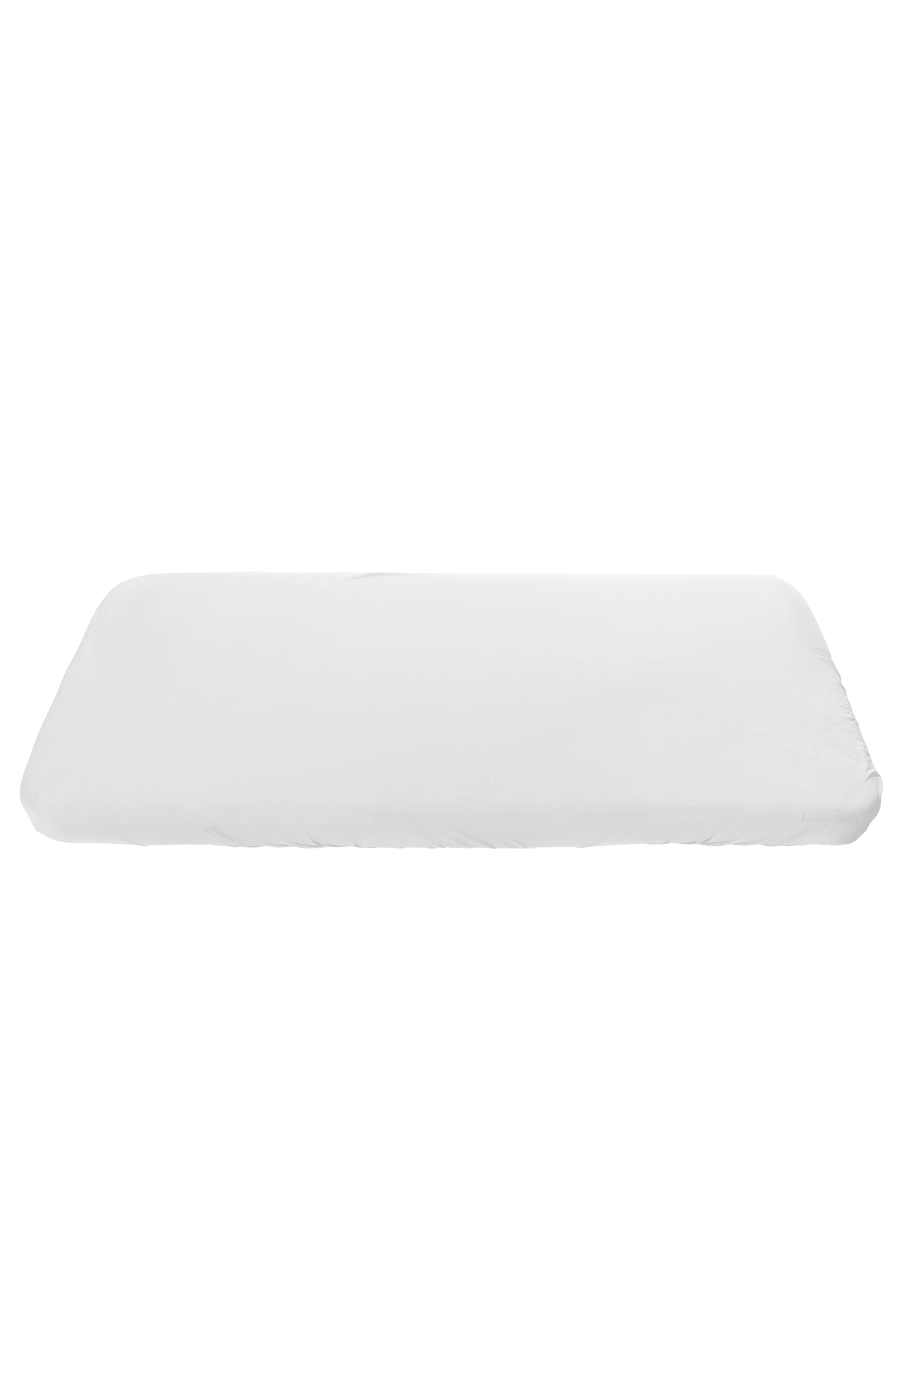 Sebra Jersey Fitted Cot Sheet - White